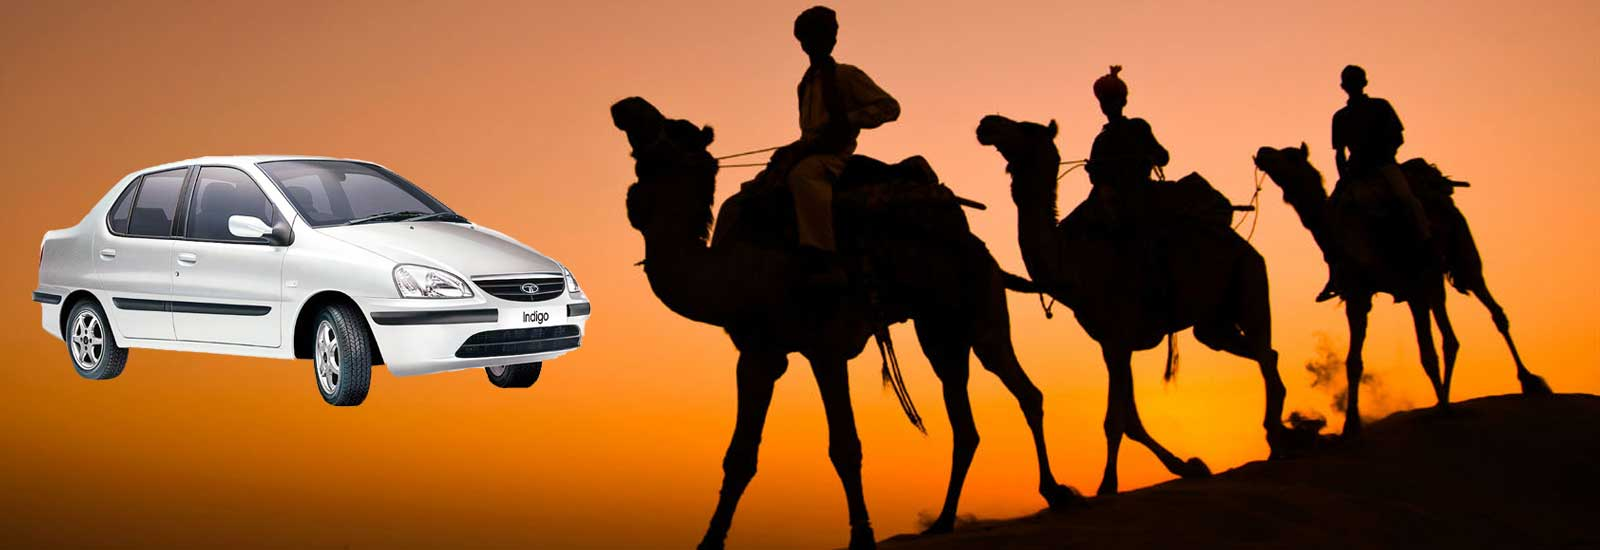 rent a car in Udaipur Rajasthan, Car on Rent udaipur, Car Rental in Udaipur, Best Car rental in Udaipur, Udaipur Car rental